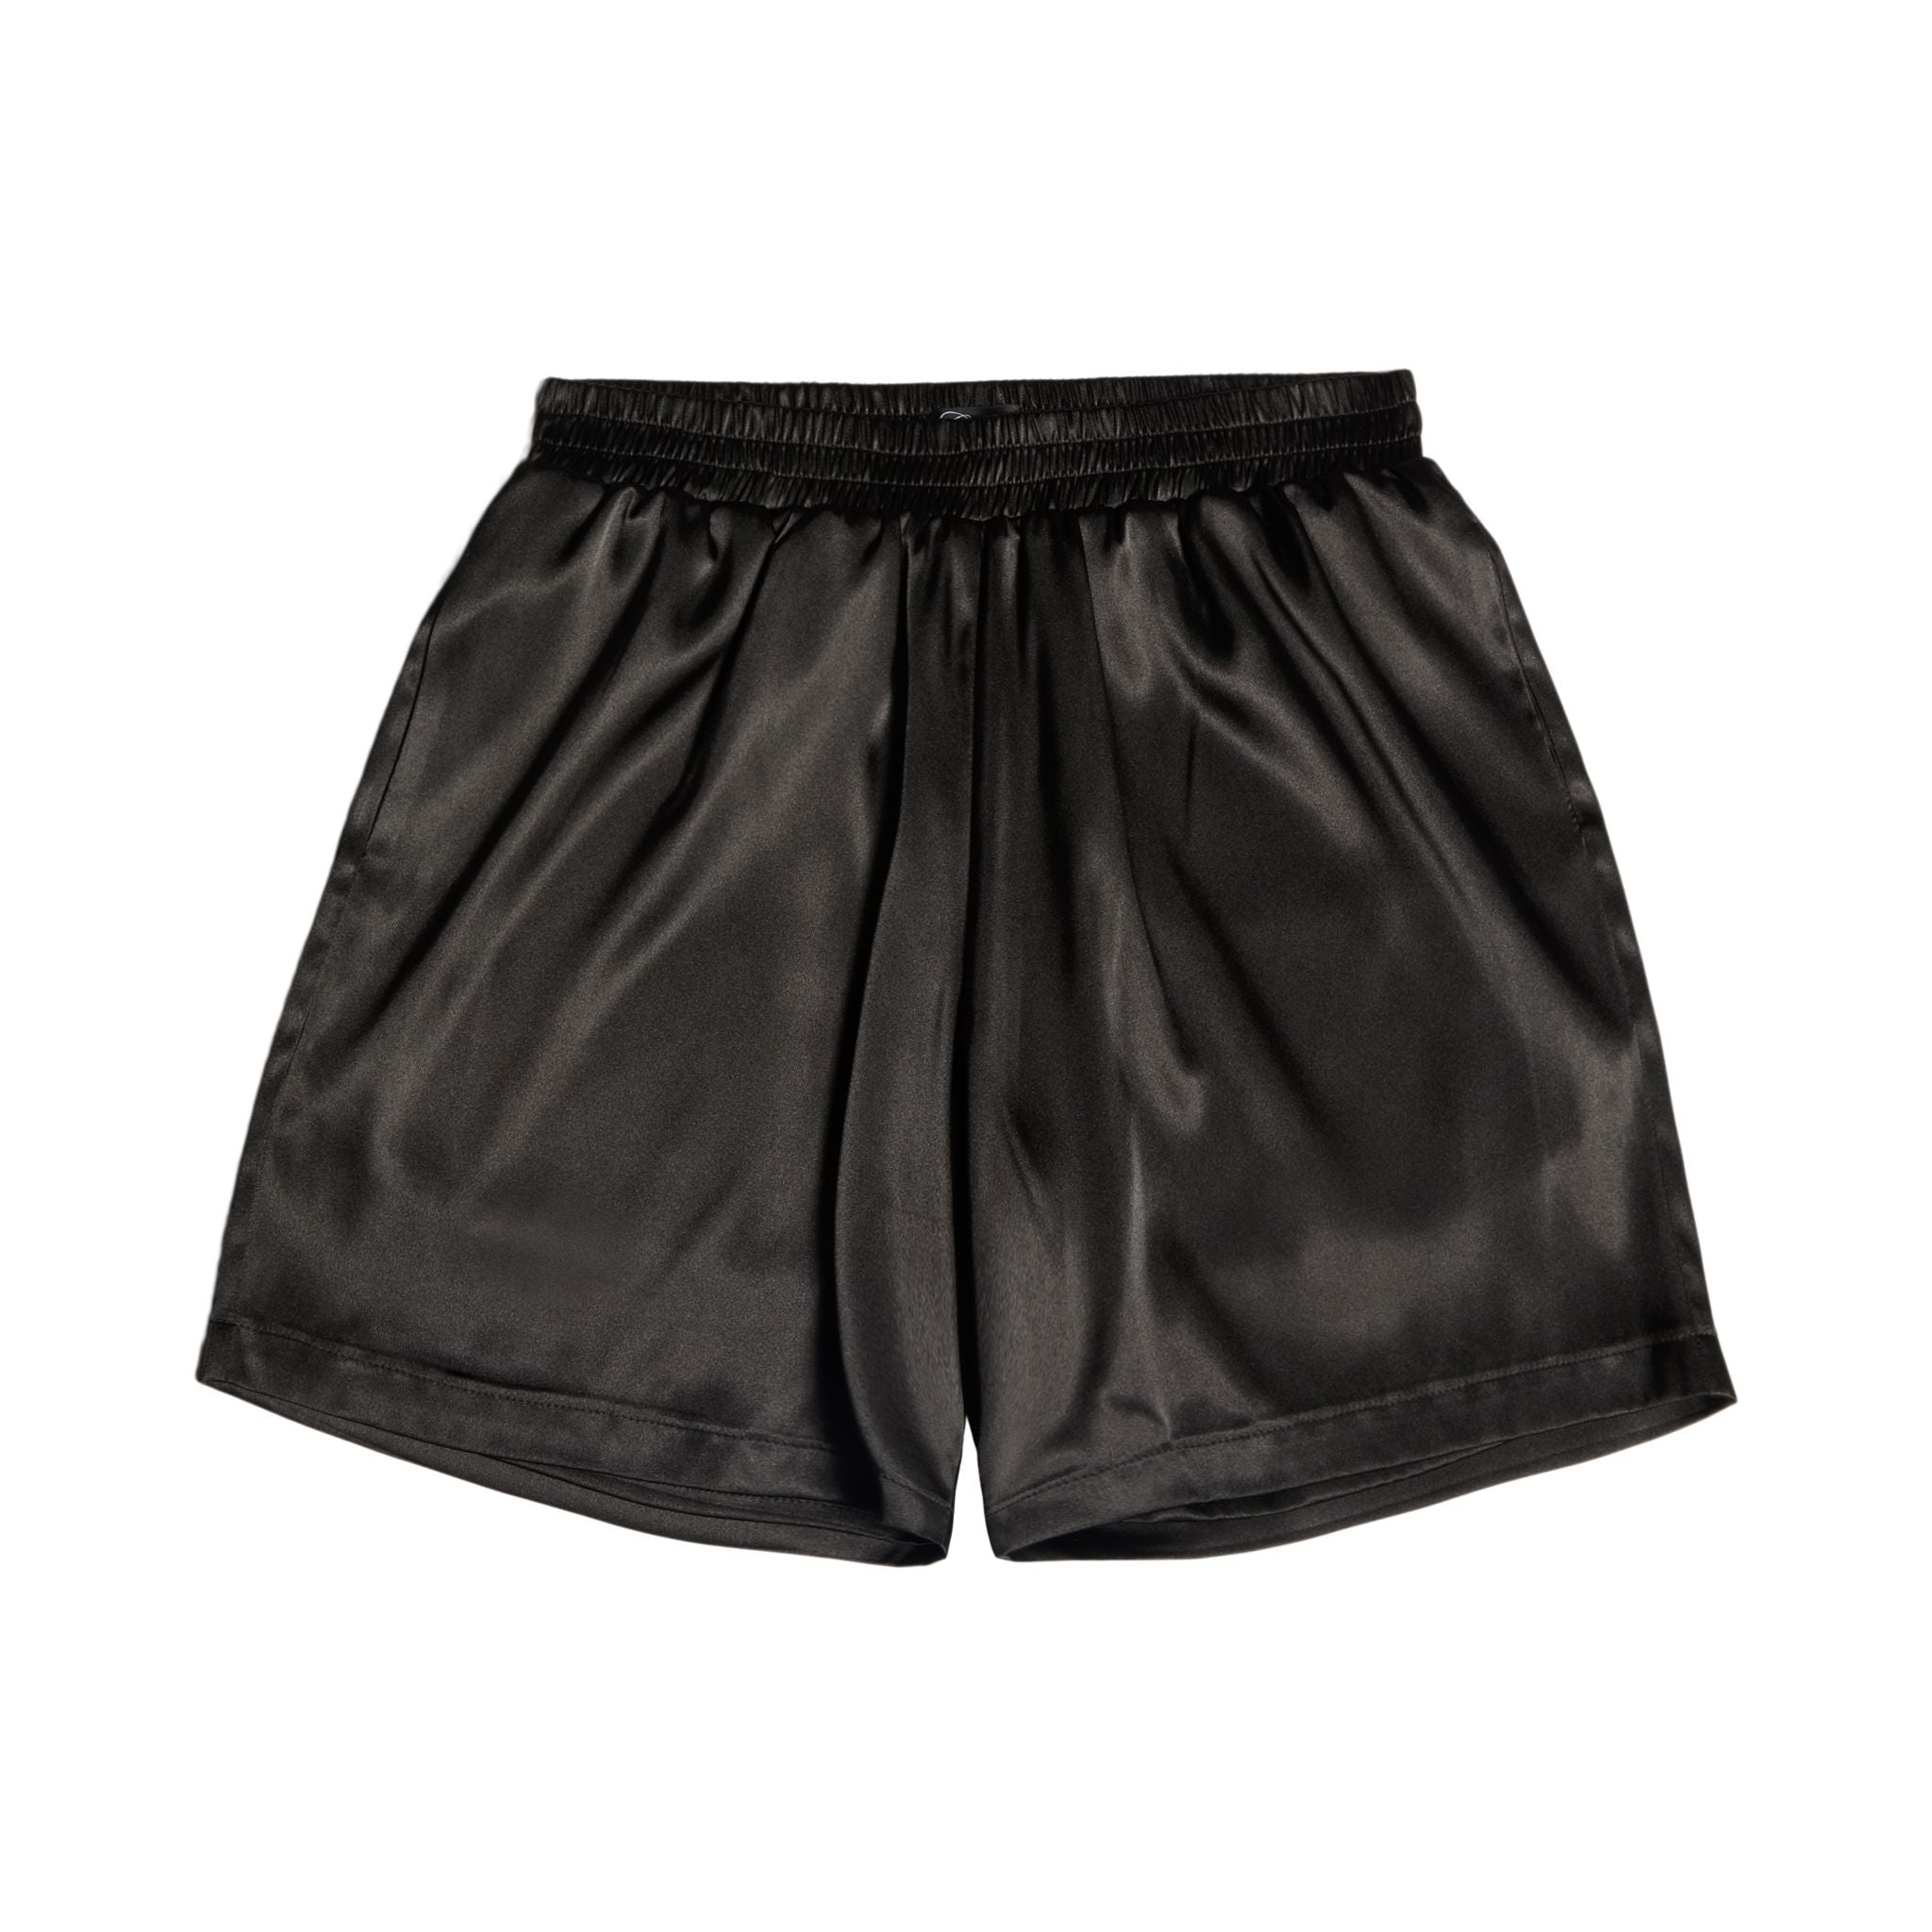 Confetti Men's Satin Shorts ( all colors )